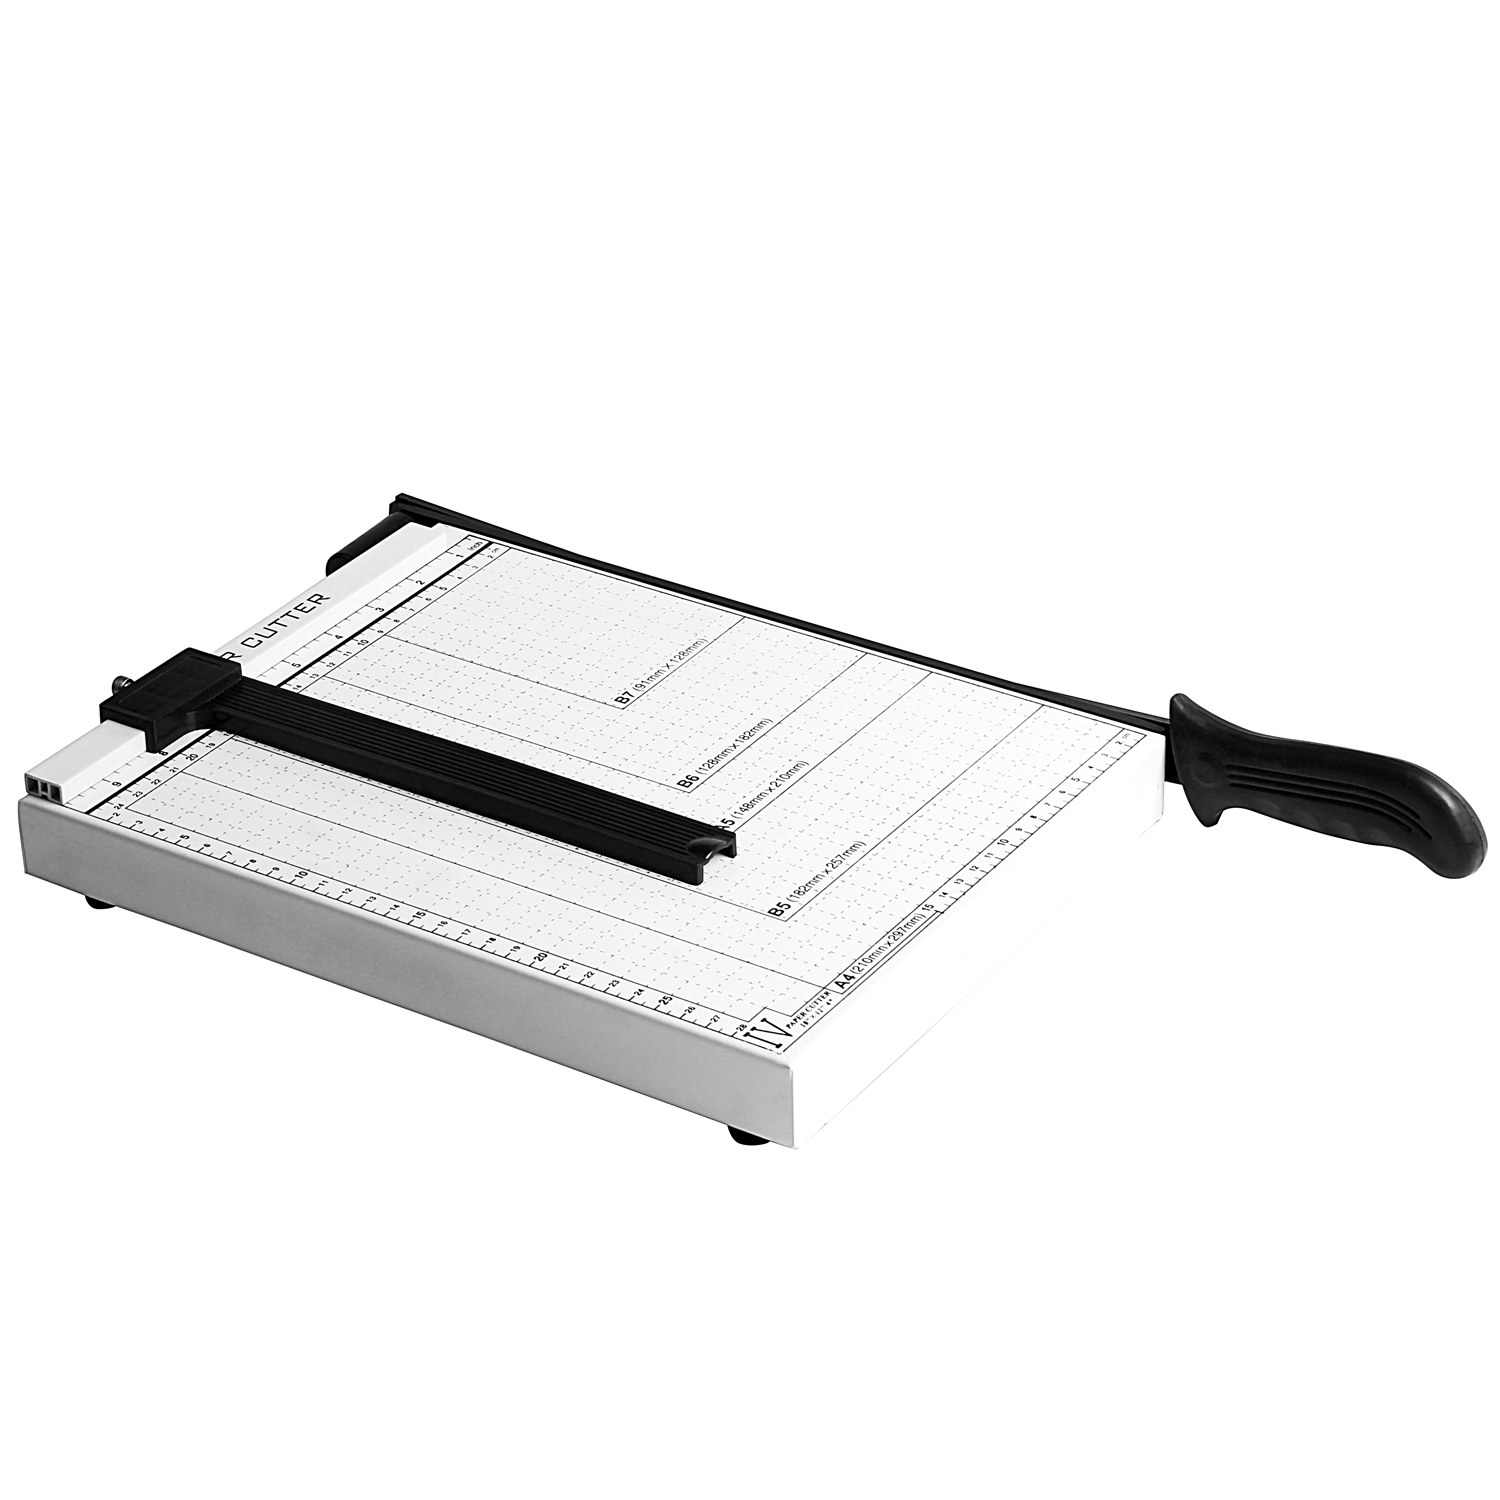 Professional A4 Paper Card Trimmer Guillotine Photo Cutter Craft For Home / Office Use